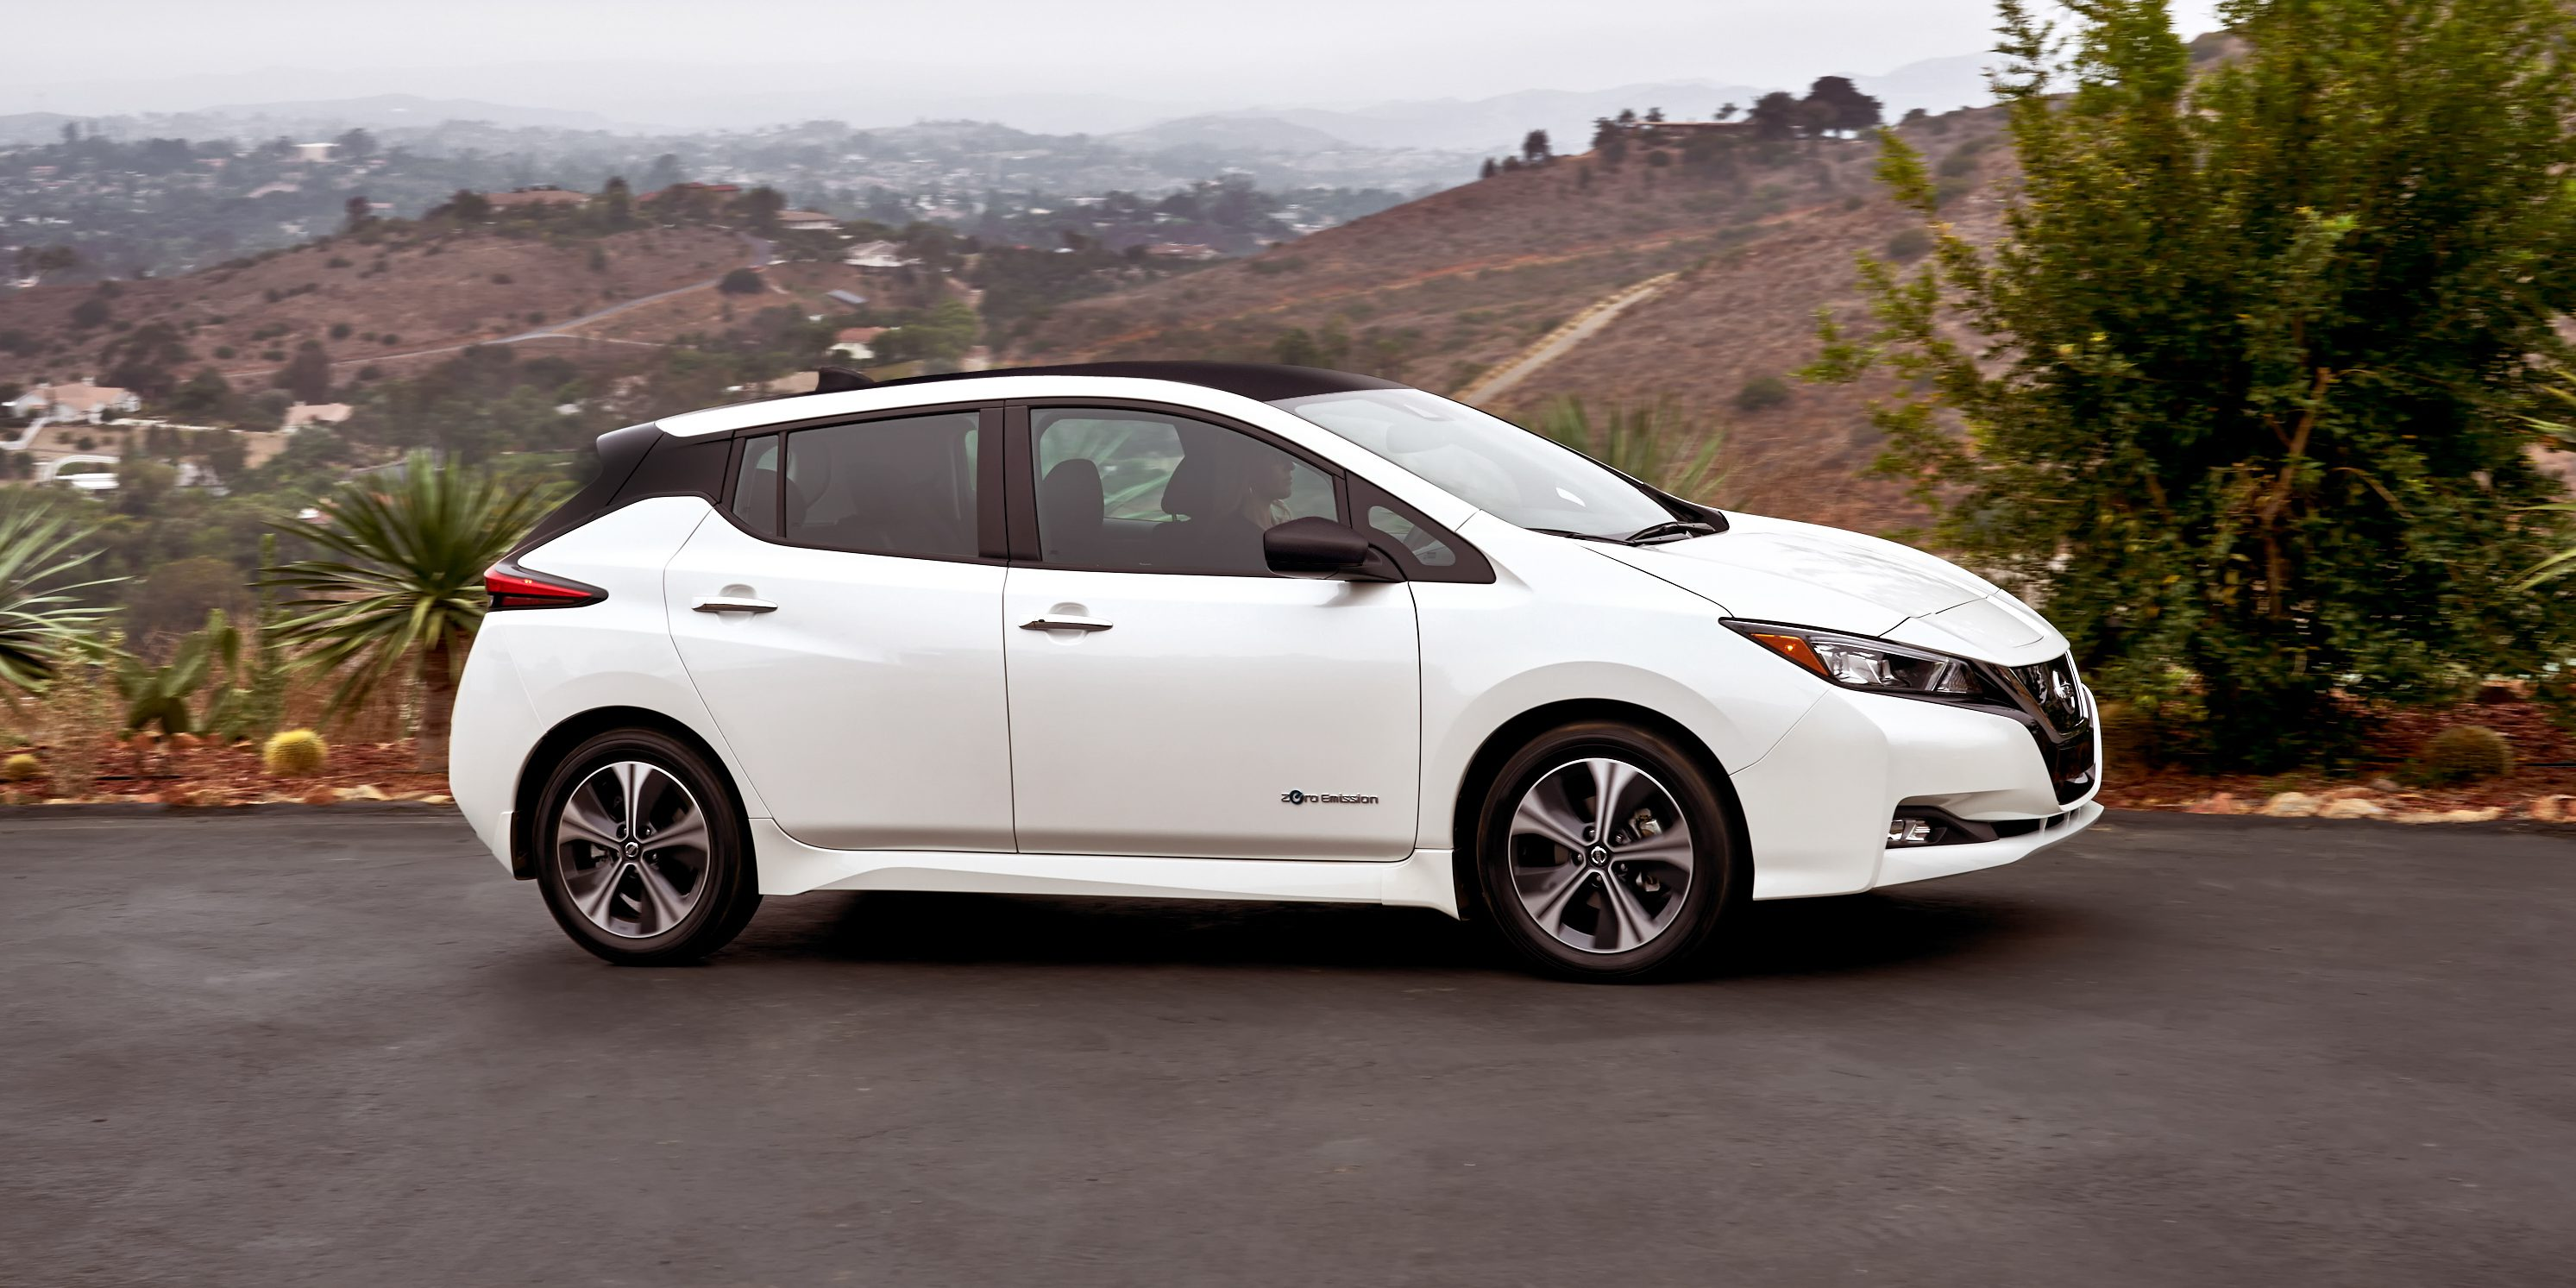 NYC reveals massive maintenance savings from electric cars in its fleet